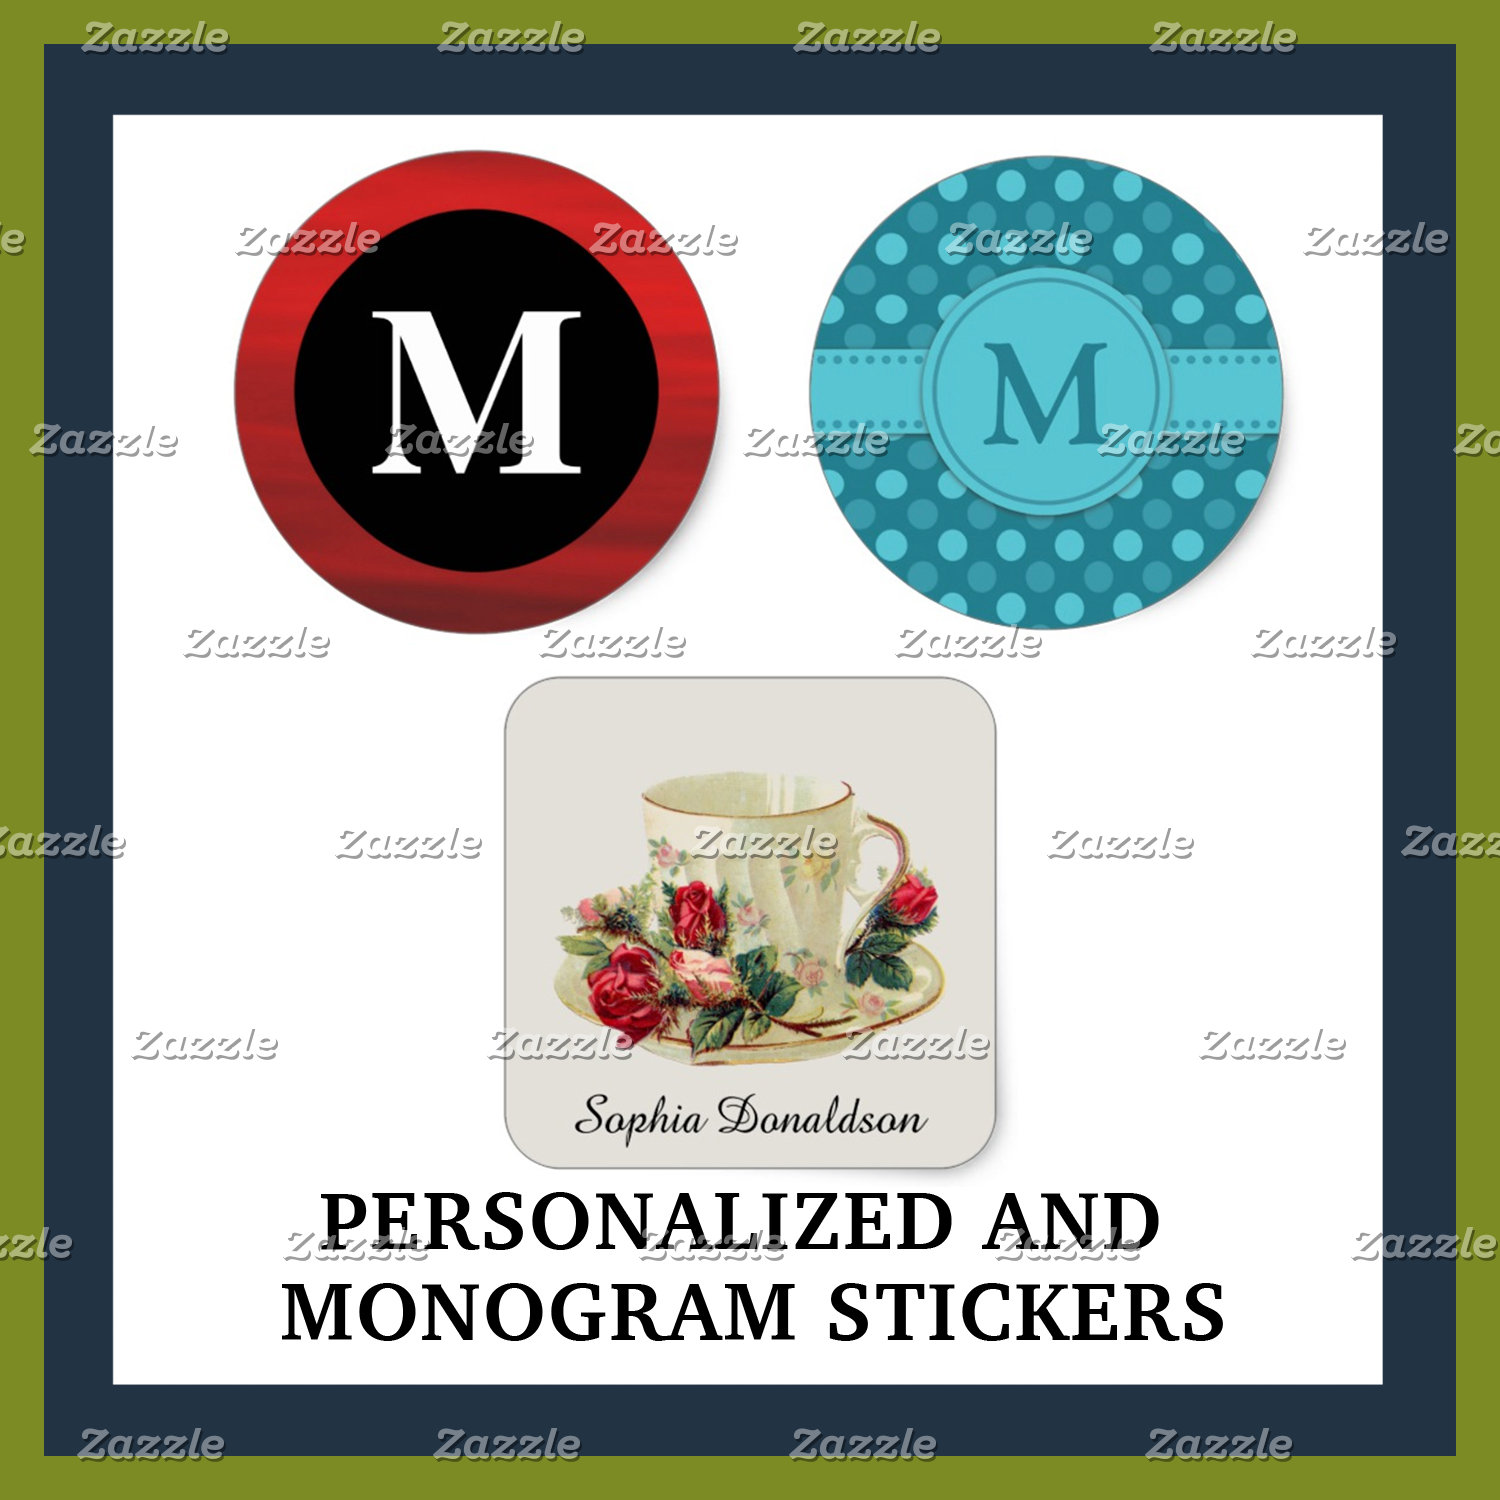 Personalized and Monogram Stickers